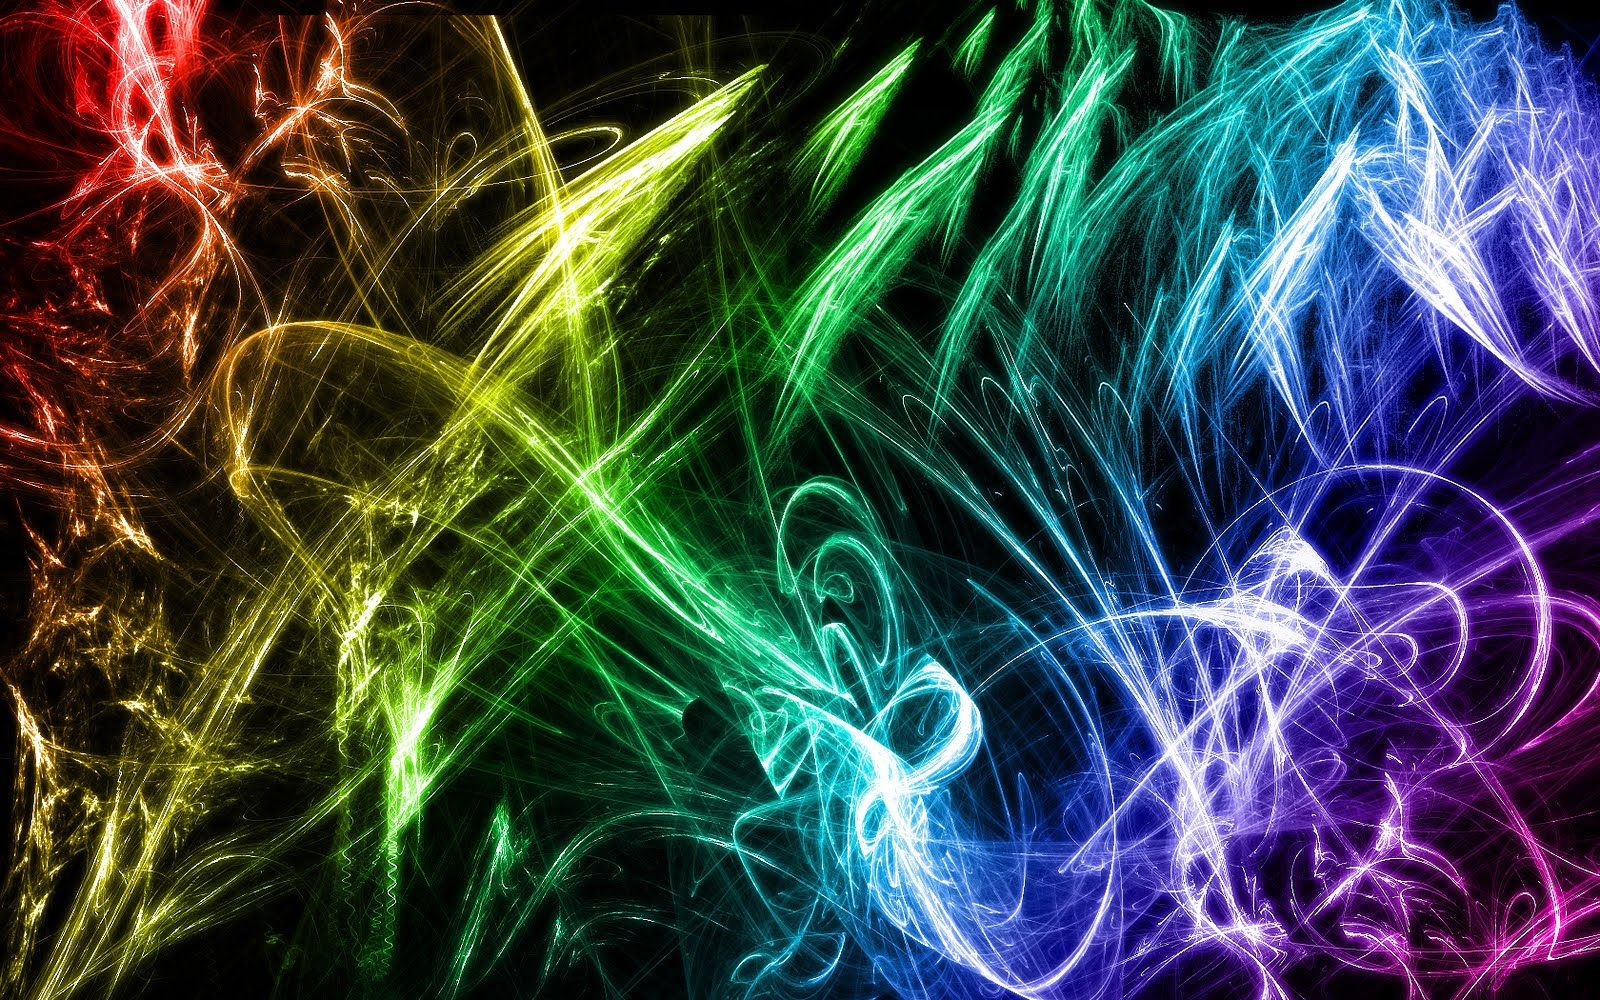 Cool Abstract Music for Desktop Wallpaper: Desktop HD Wallpaper ...